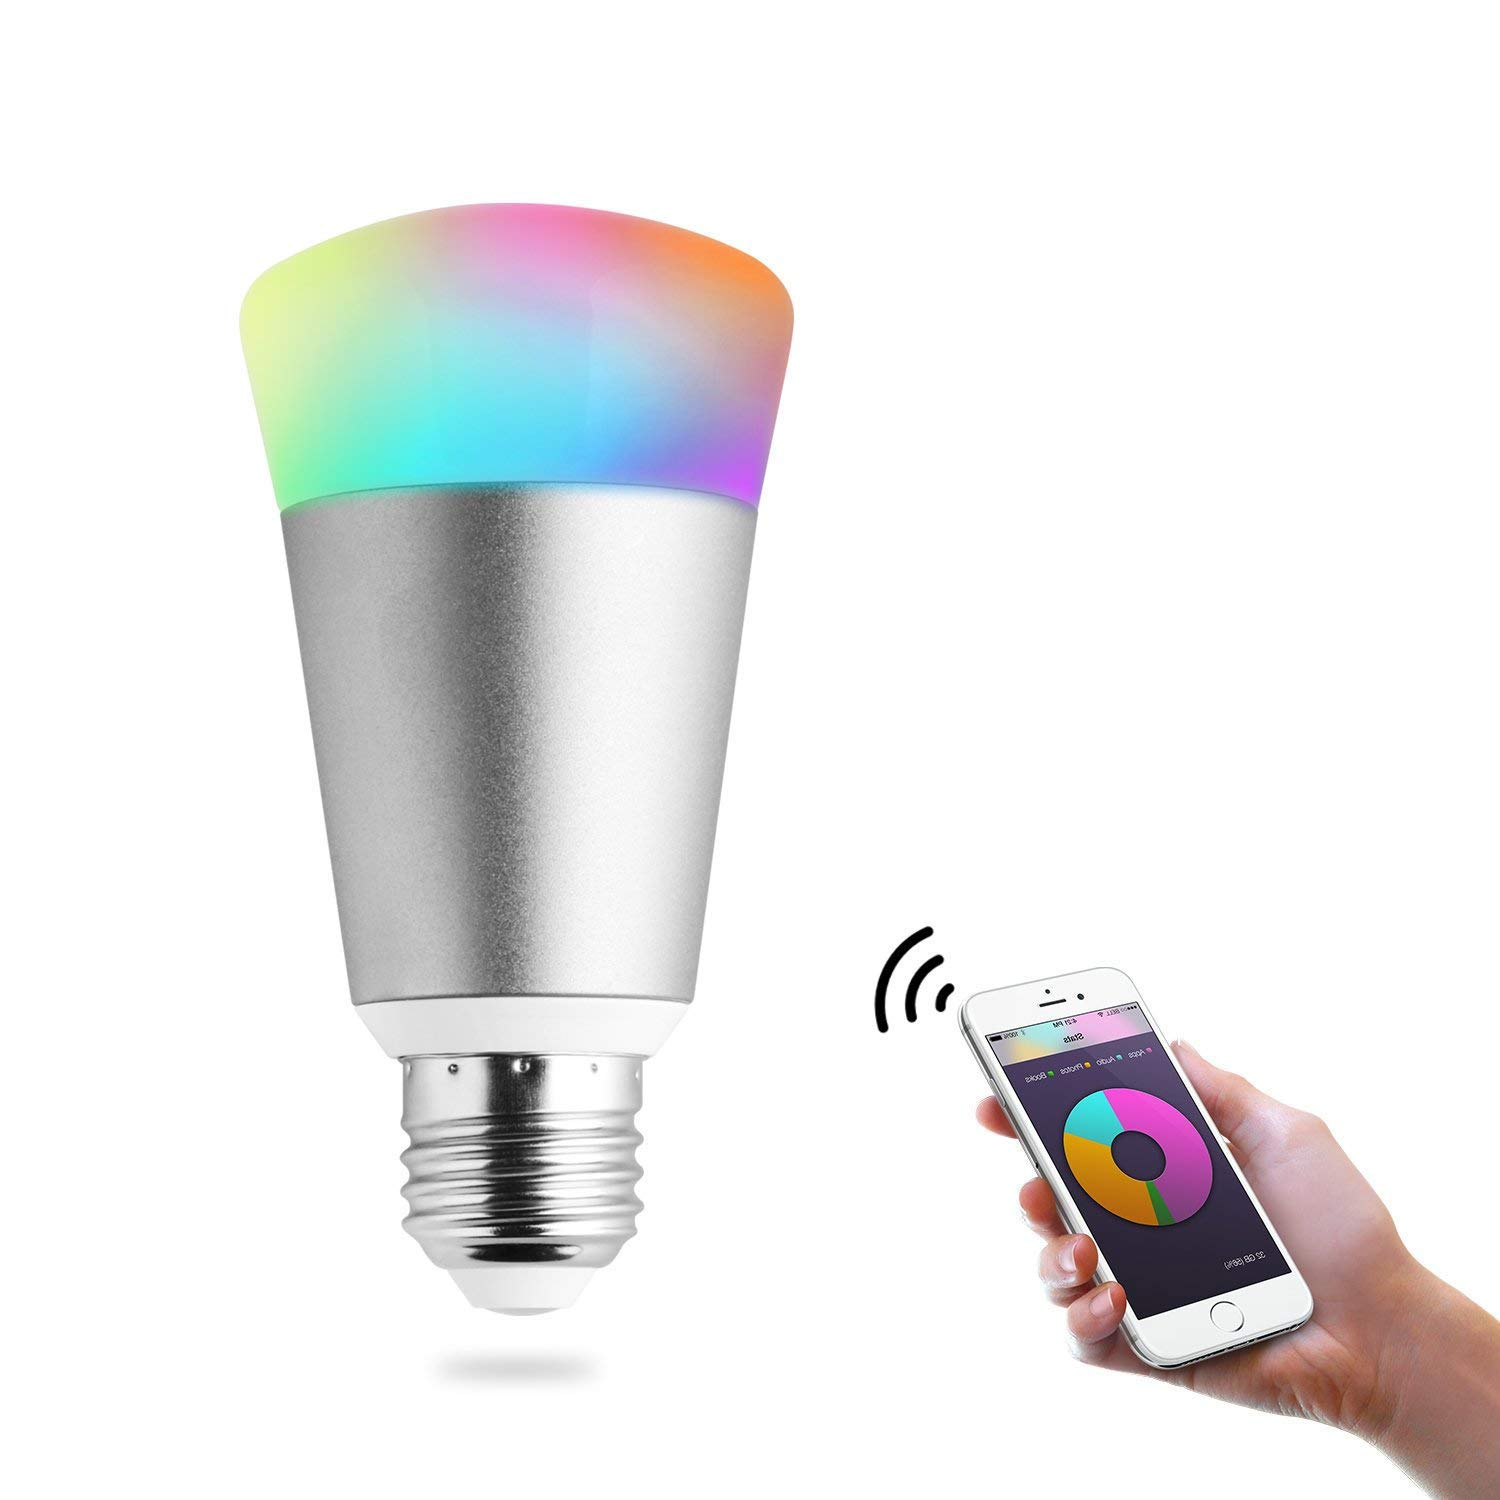 Light Bulbs WiFi Smart Led Bulb,Party Bulb Wireless lamp Work with Amazon Echo dot & Google Home, Dimmable Multicolored Color Changing, iOS & Android Smartphone Remote Control (7W,Silver